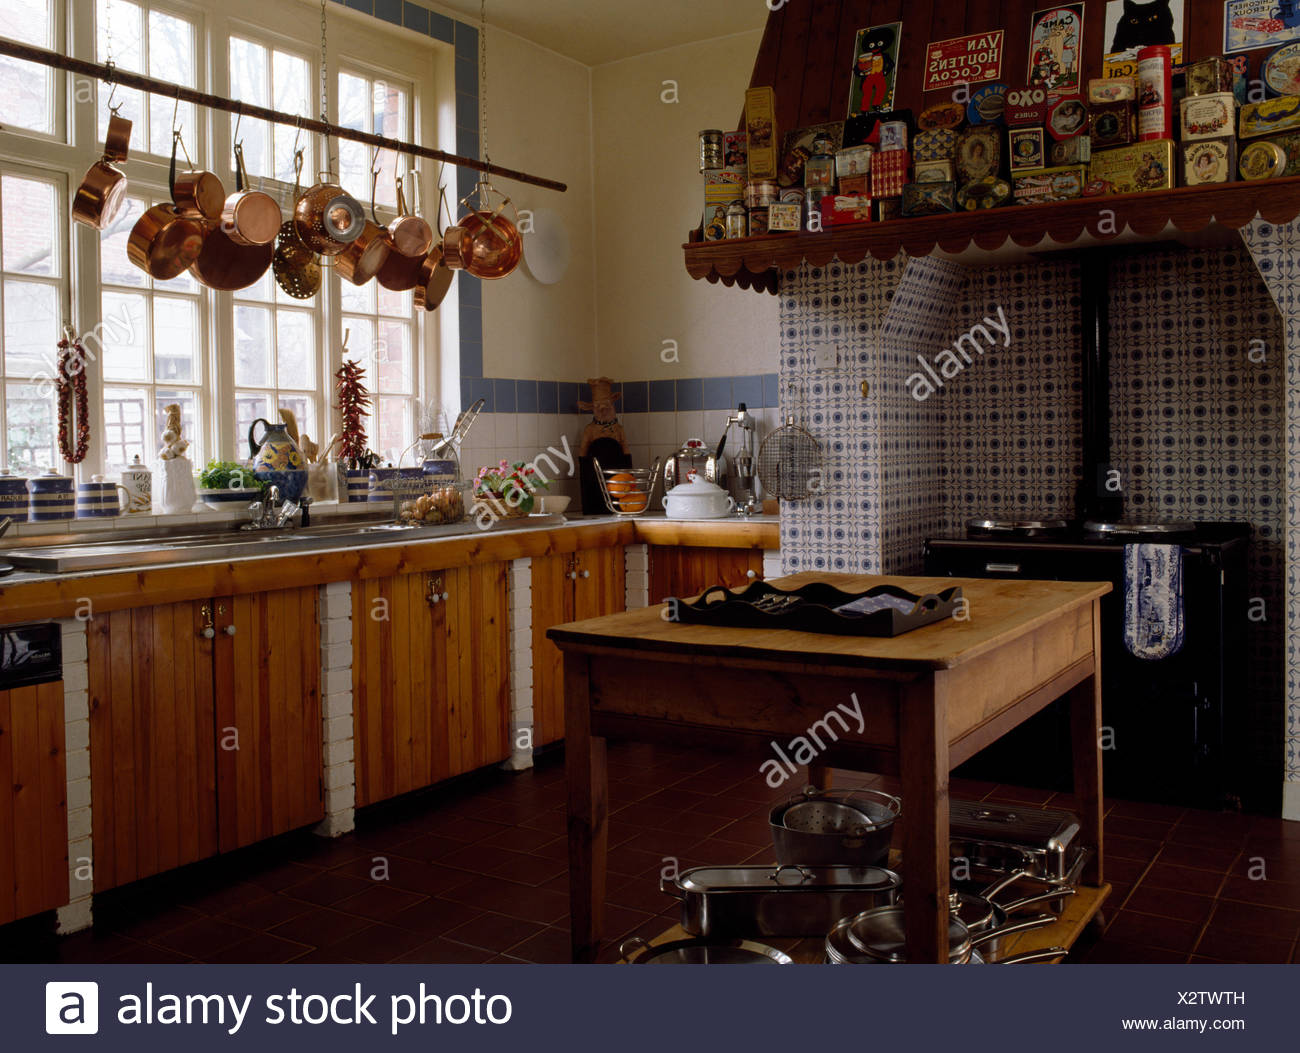 Copper Pans Storage Stockfotos & Copper Pans Storage Bilder - Alamy